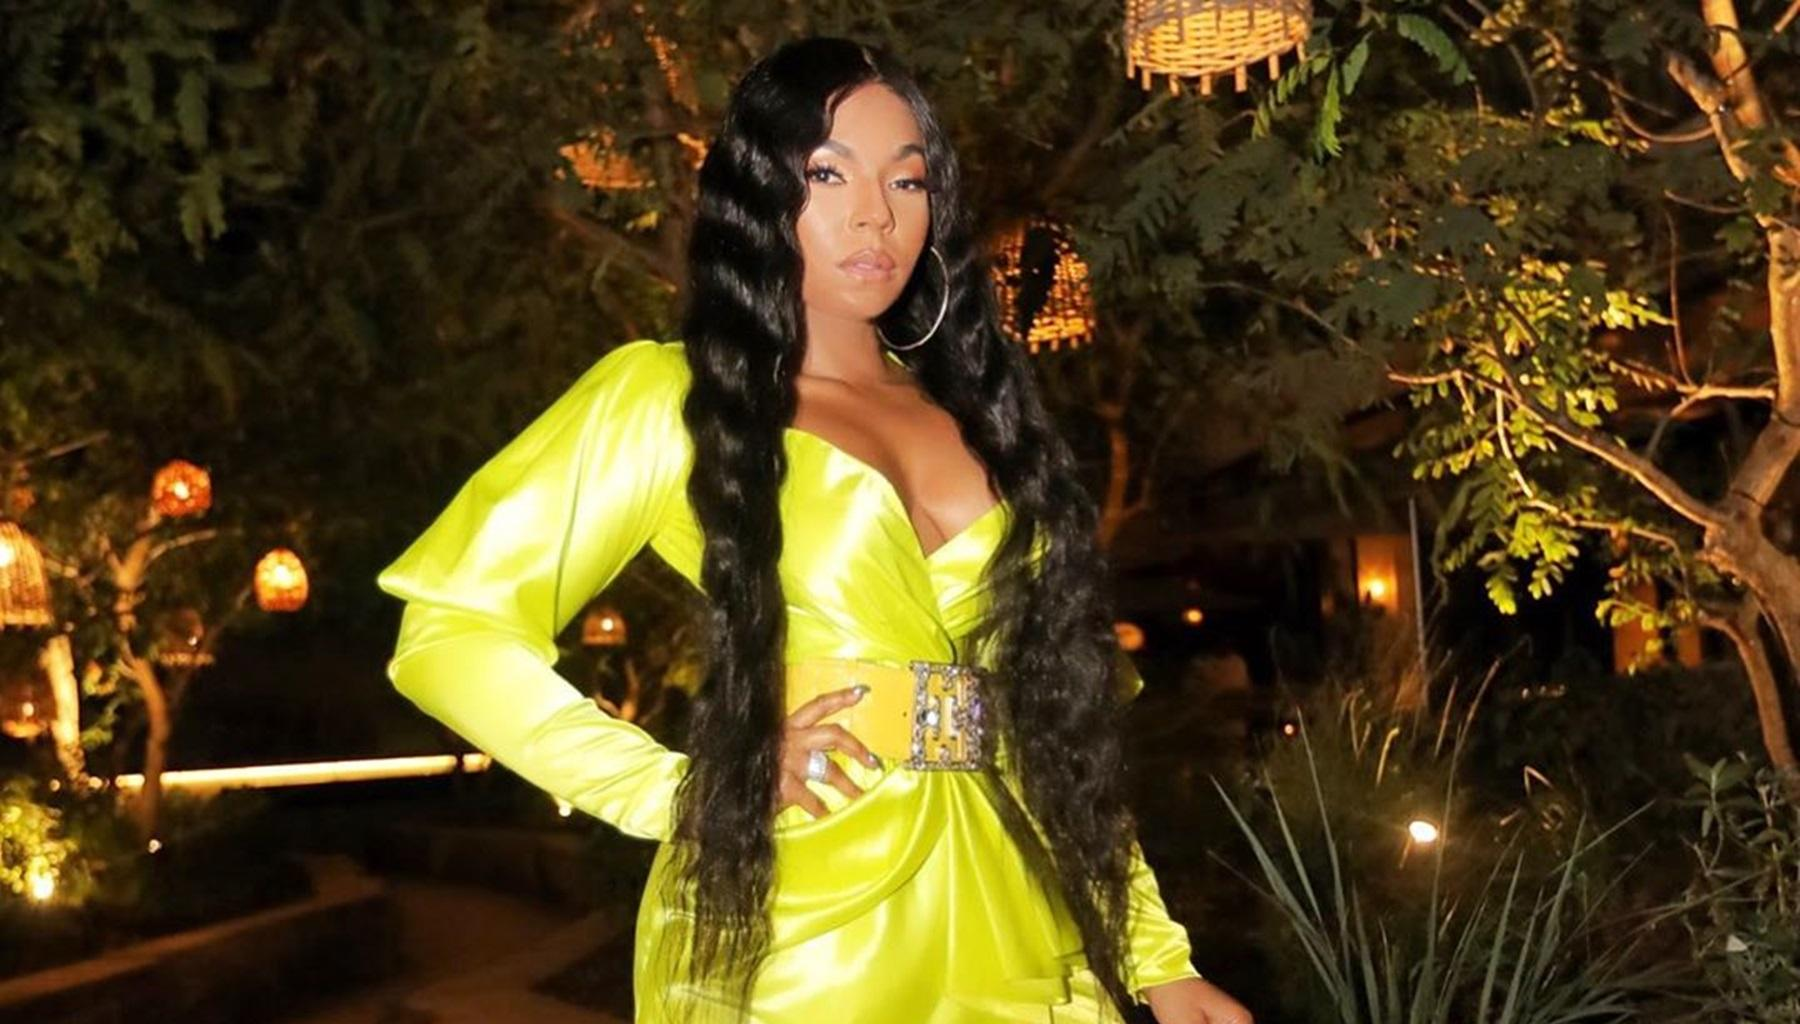 Ashanti Is Pushing Things To The Limit In Controversial Revealing Outfit -- Photos Have Fans Divided